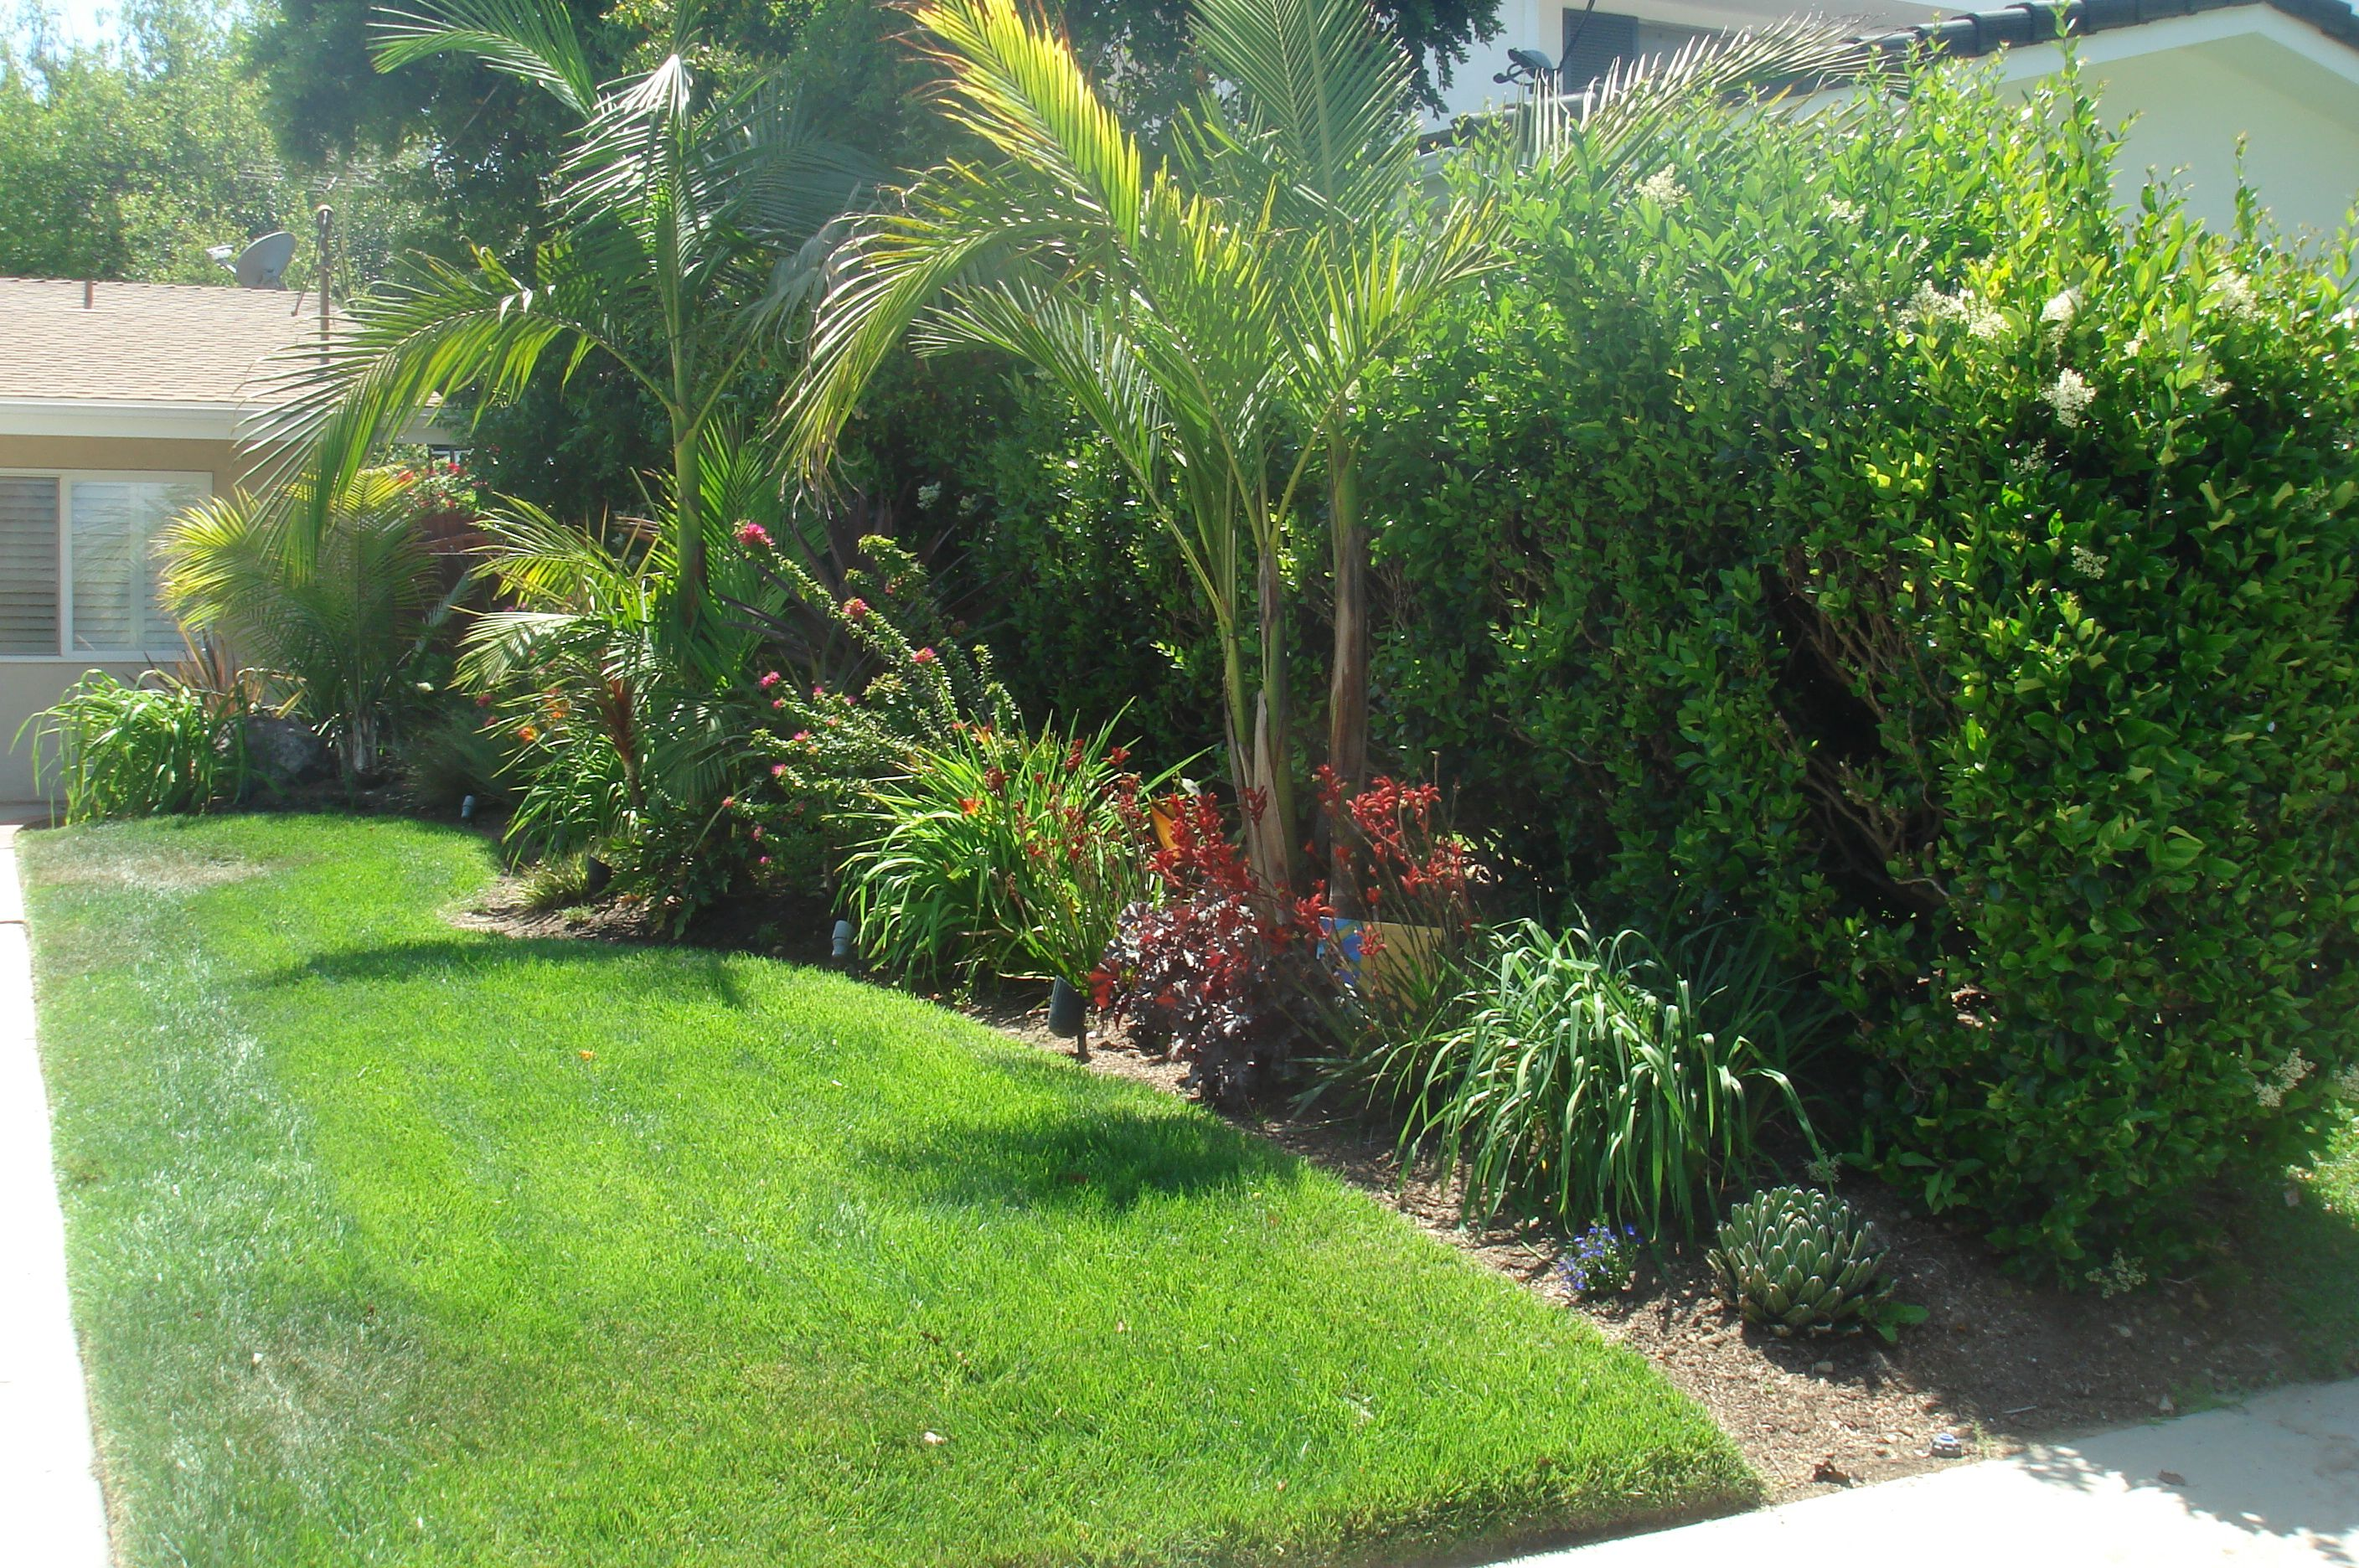 Front yard tropical landscaping ideas for Garden design ideas short wide